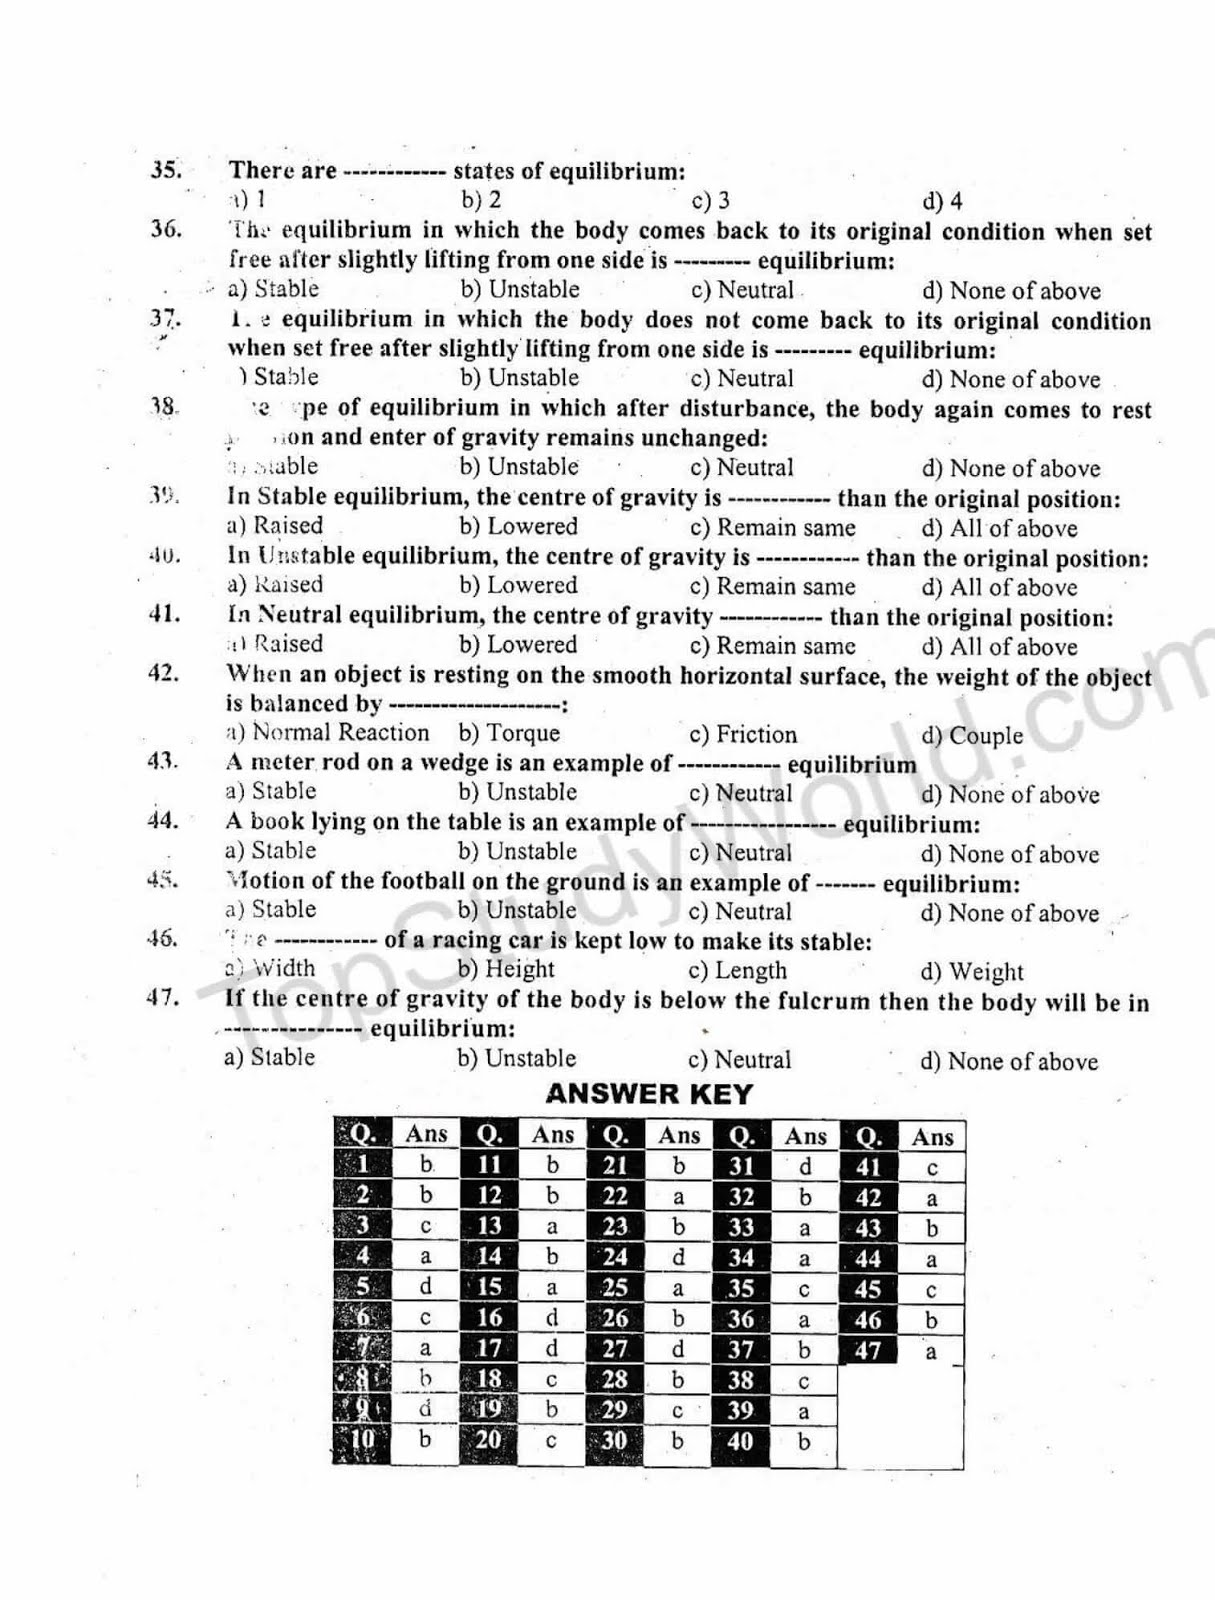 ptb 10th class physics notes solved question answers amp numerical problems